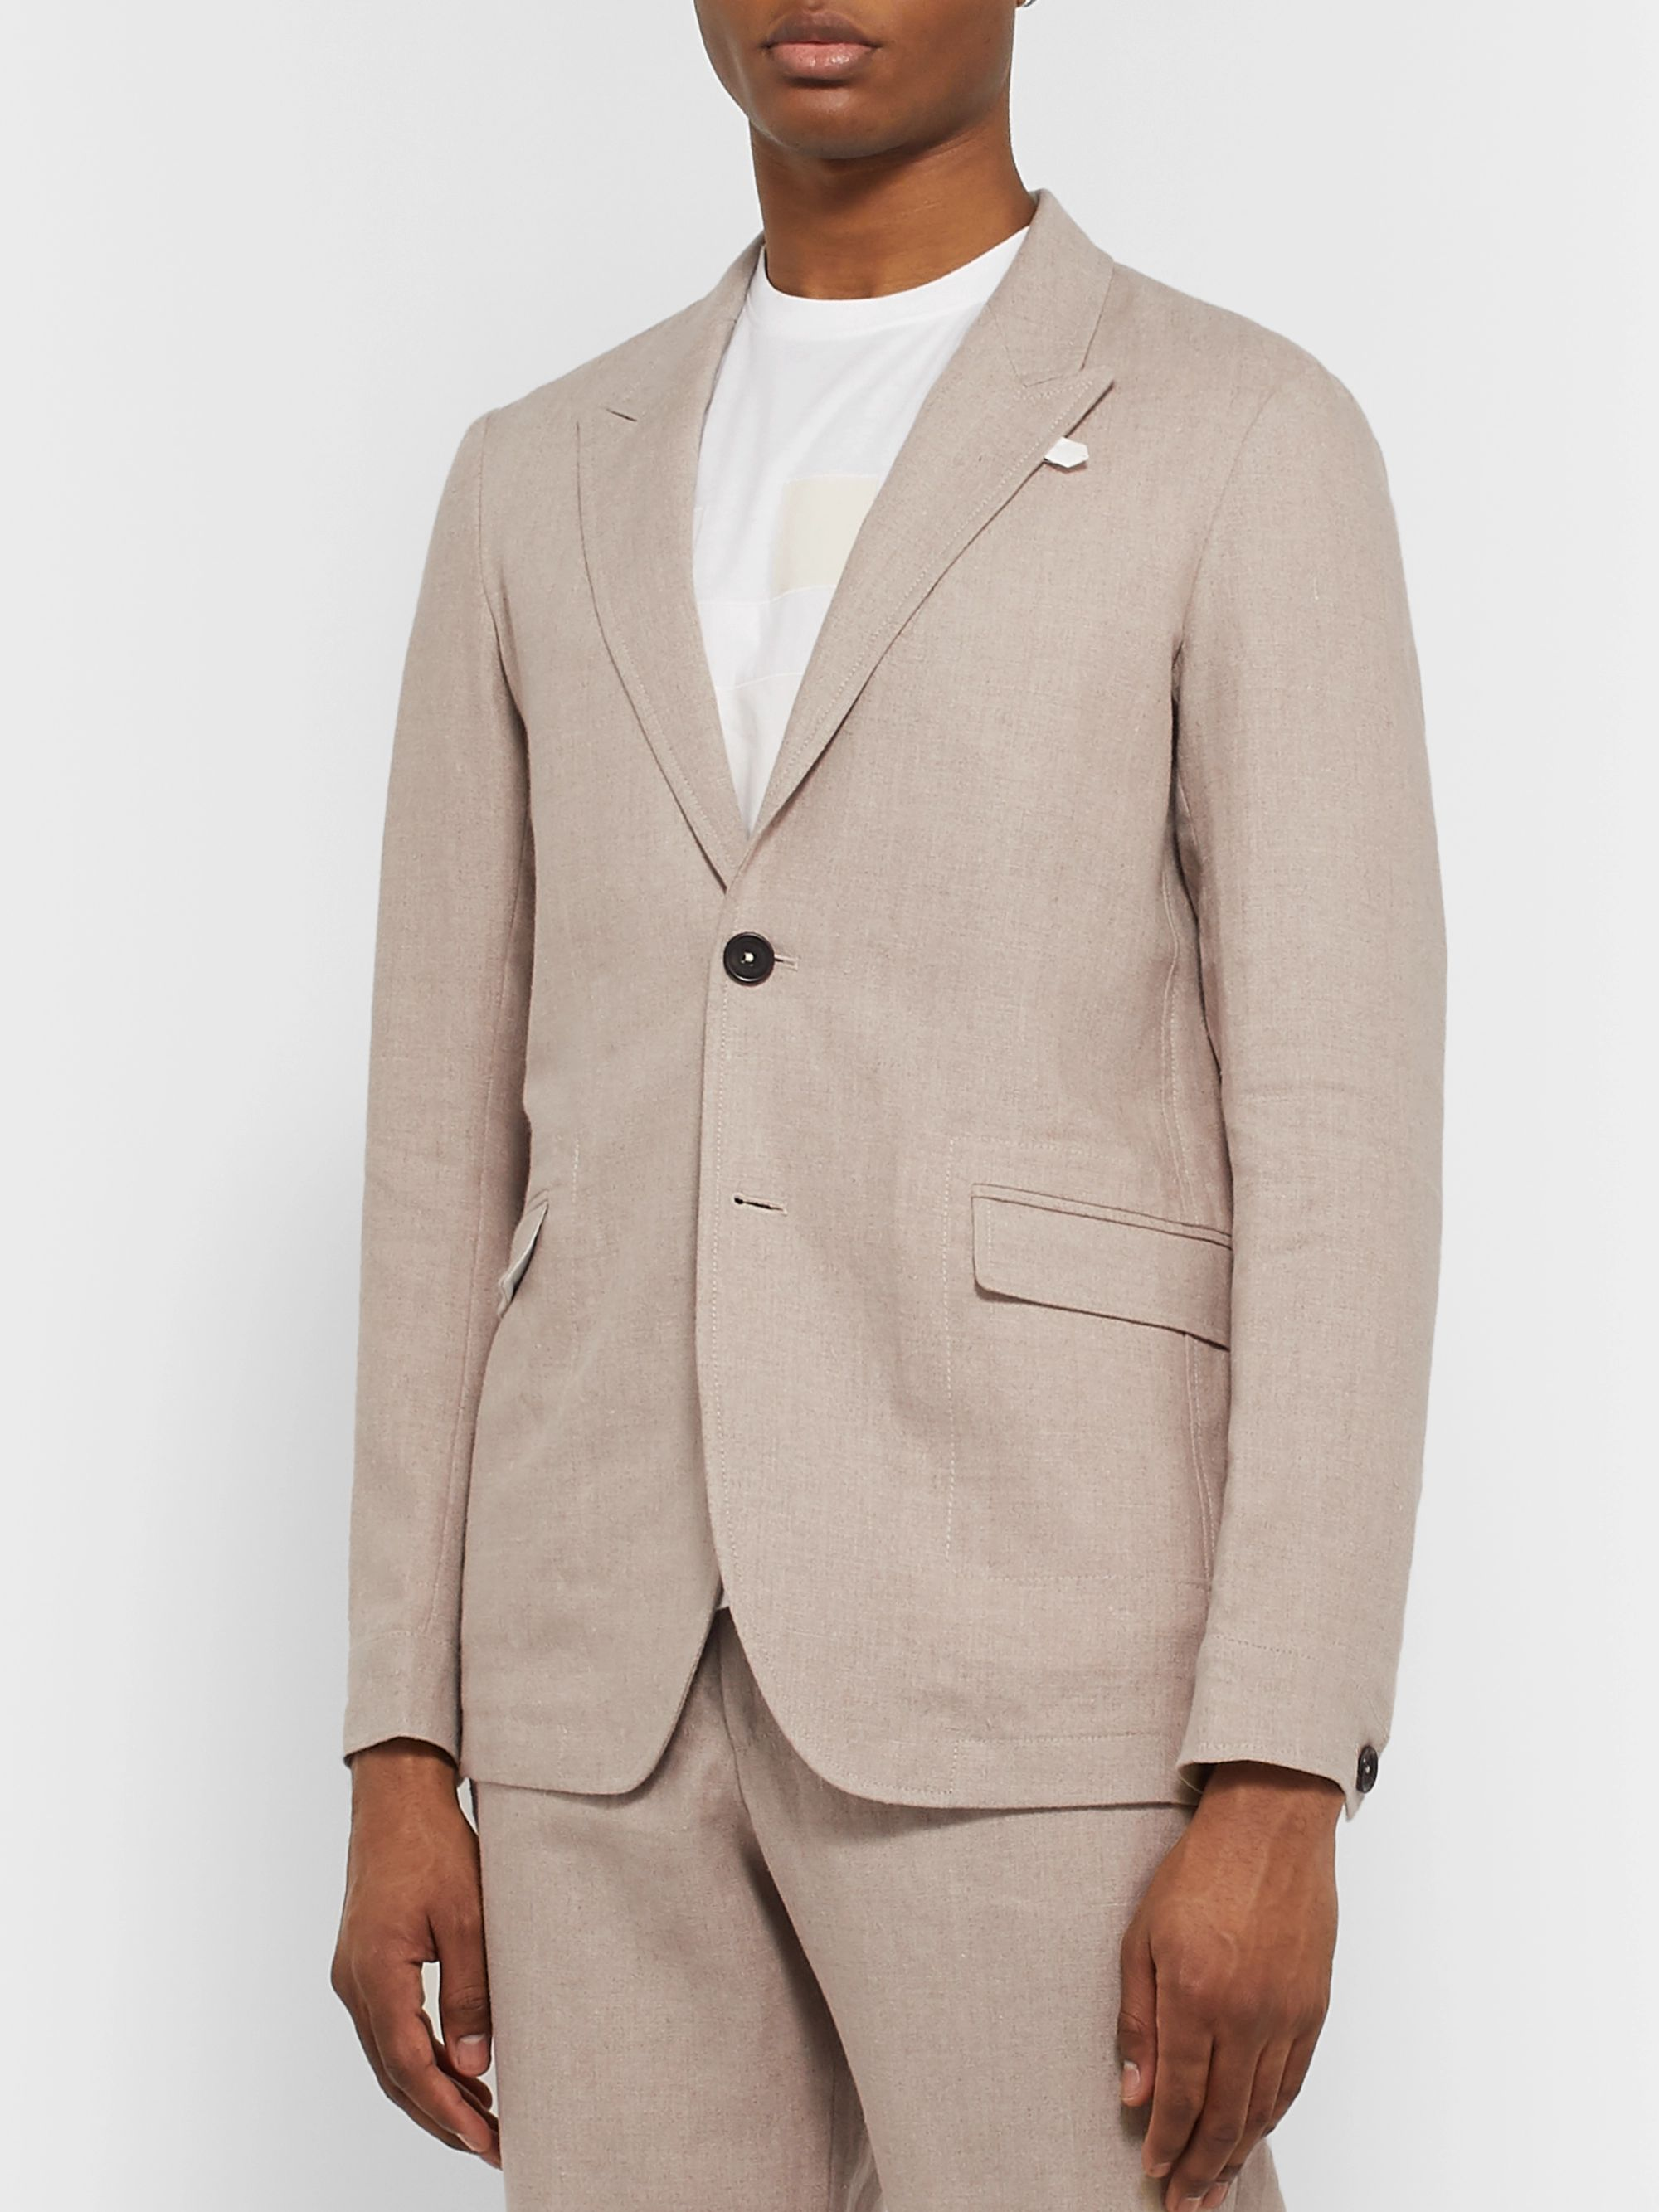 Oliver Spencer Beige Brookes Unstructured Linen Suit Jacket